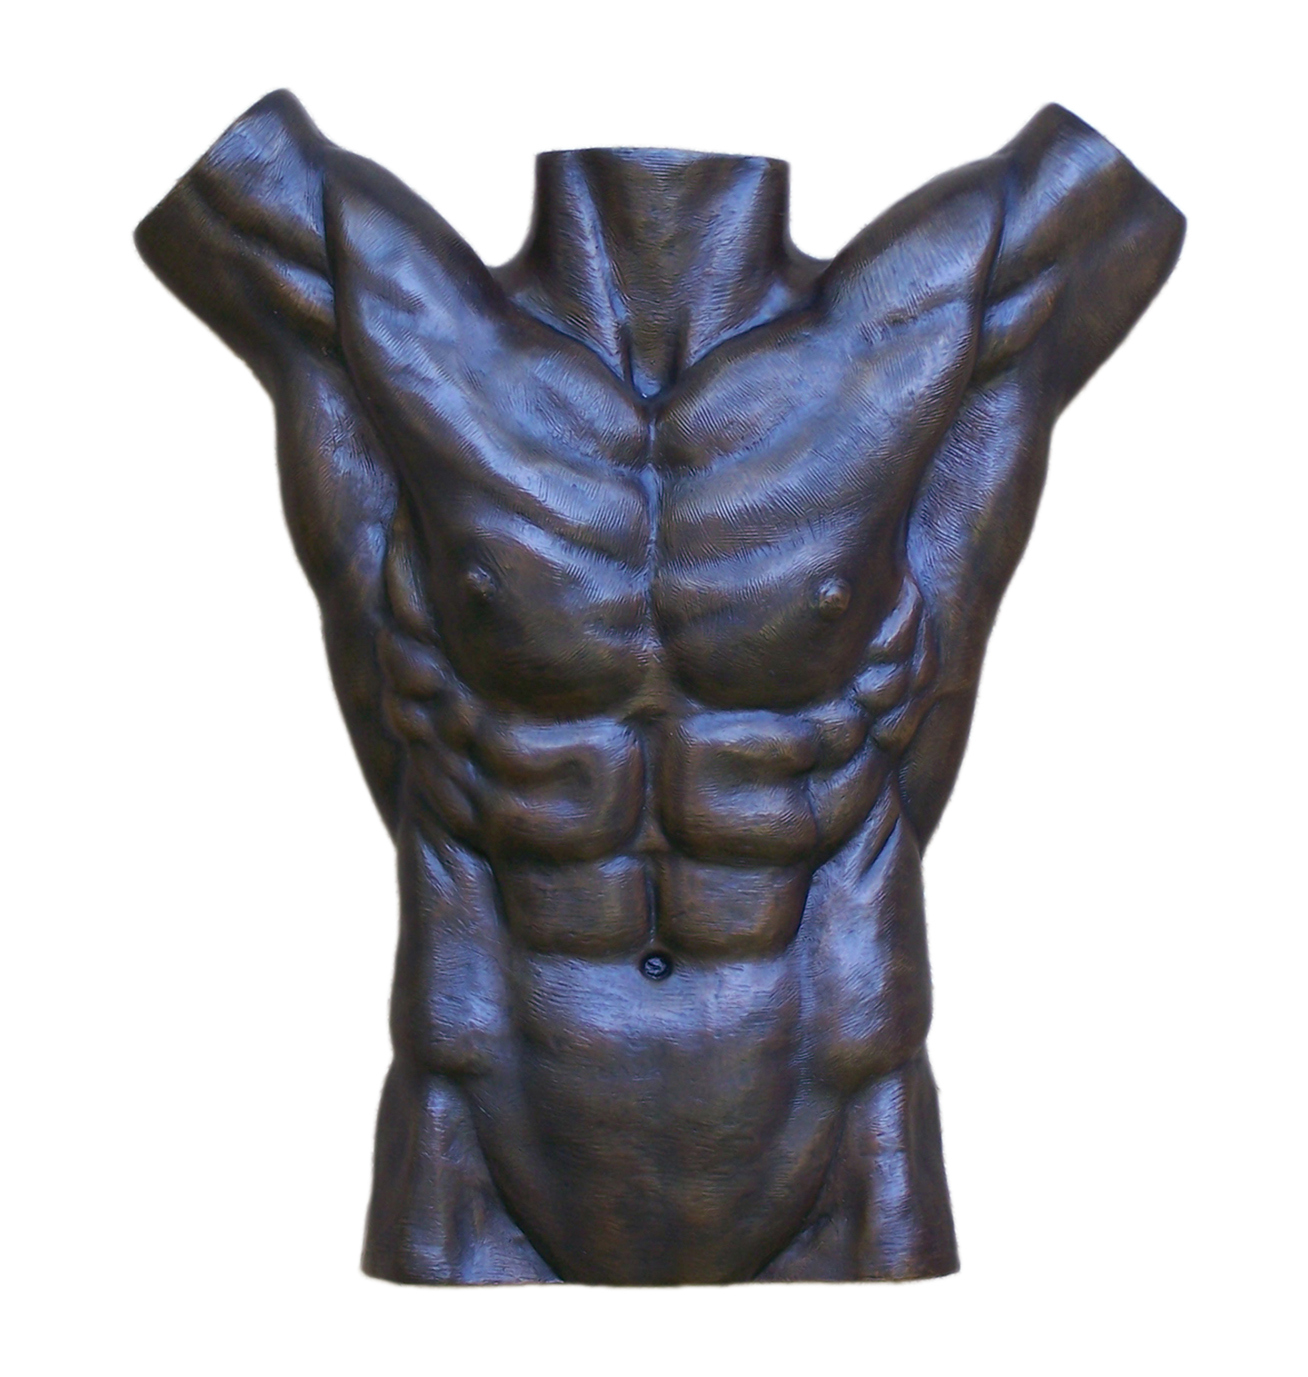 Bronze Nude Male Torso Wall Sculpture